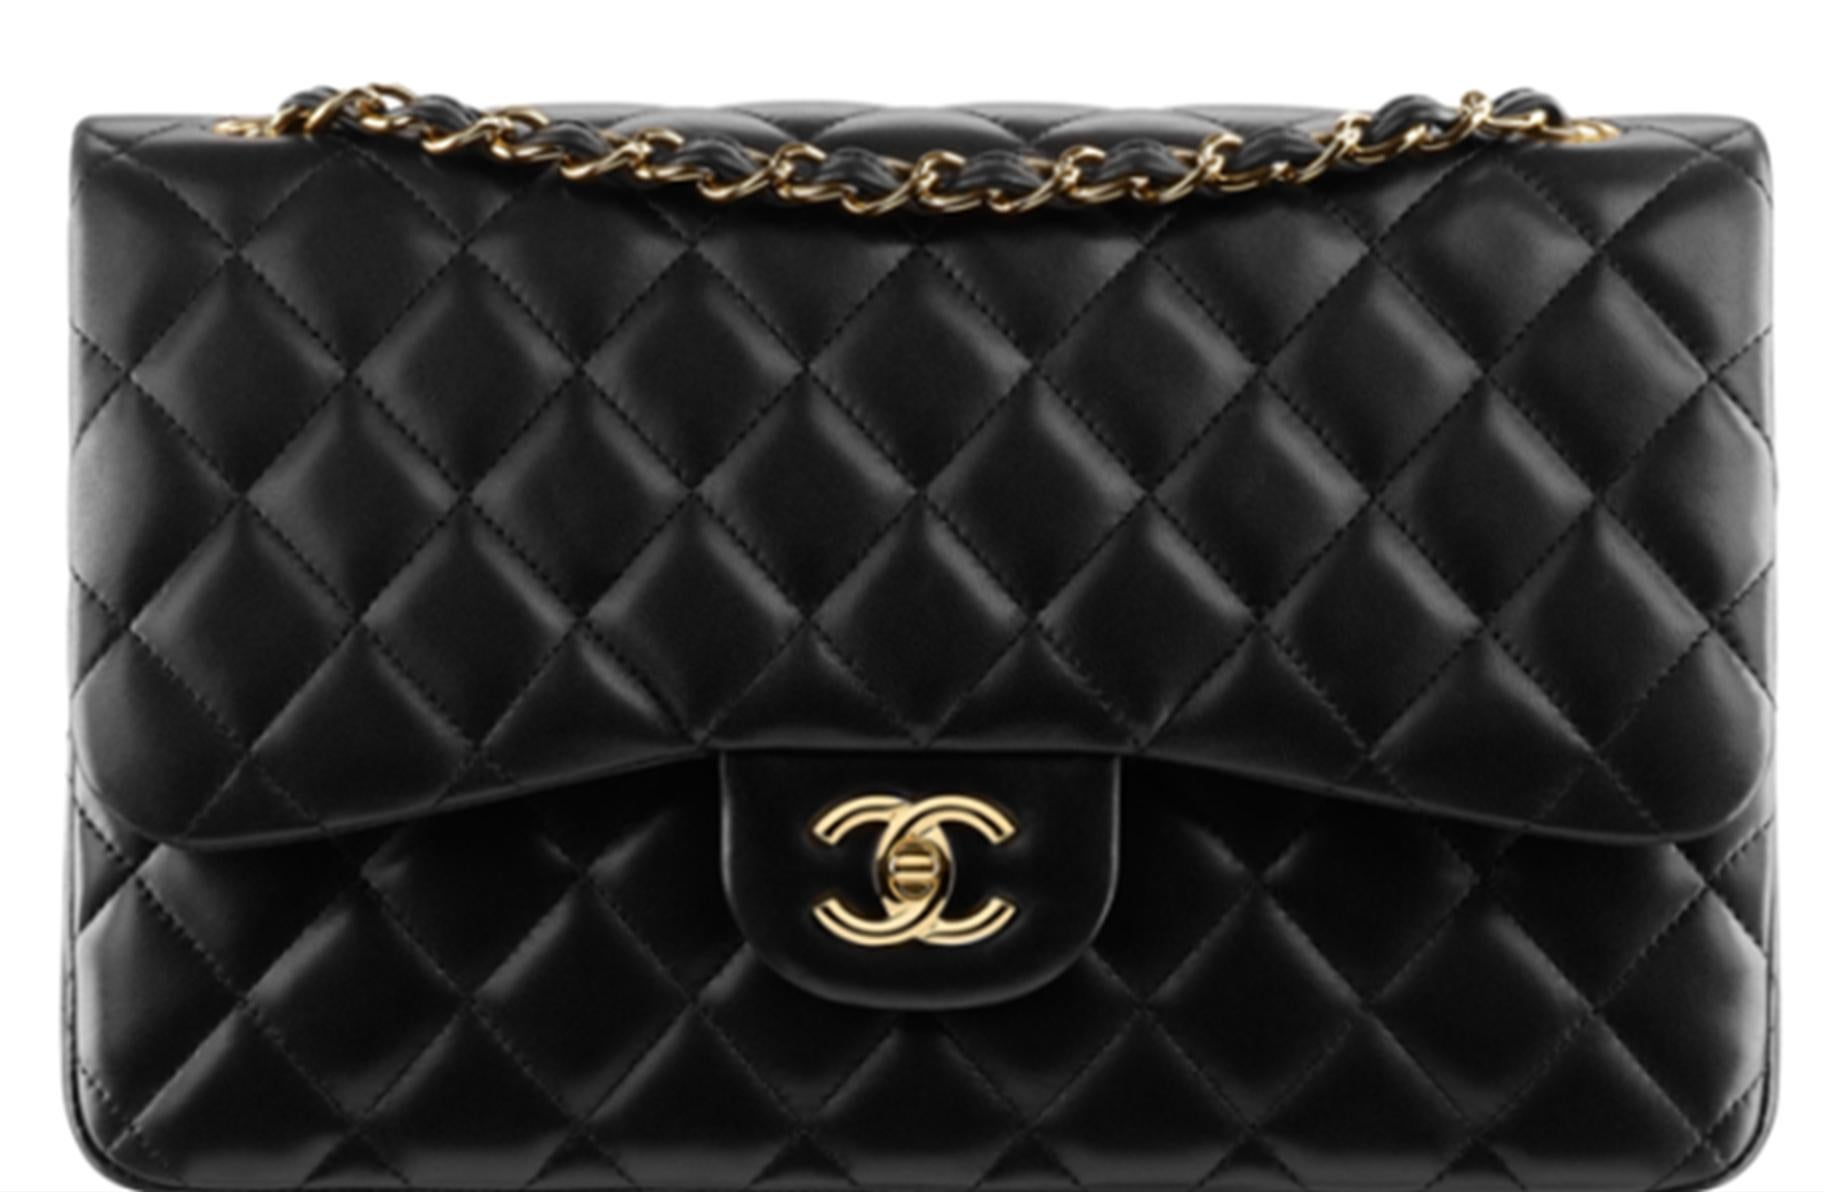 5b3e11a106ea5b The best investment designer handbags to buy, from Chanel to Dior ...